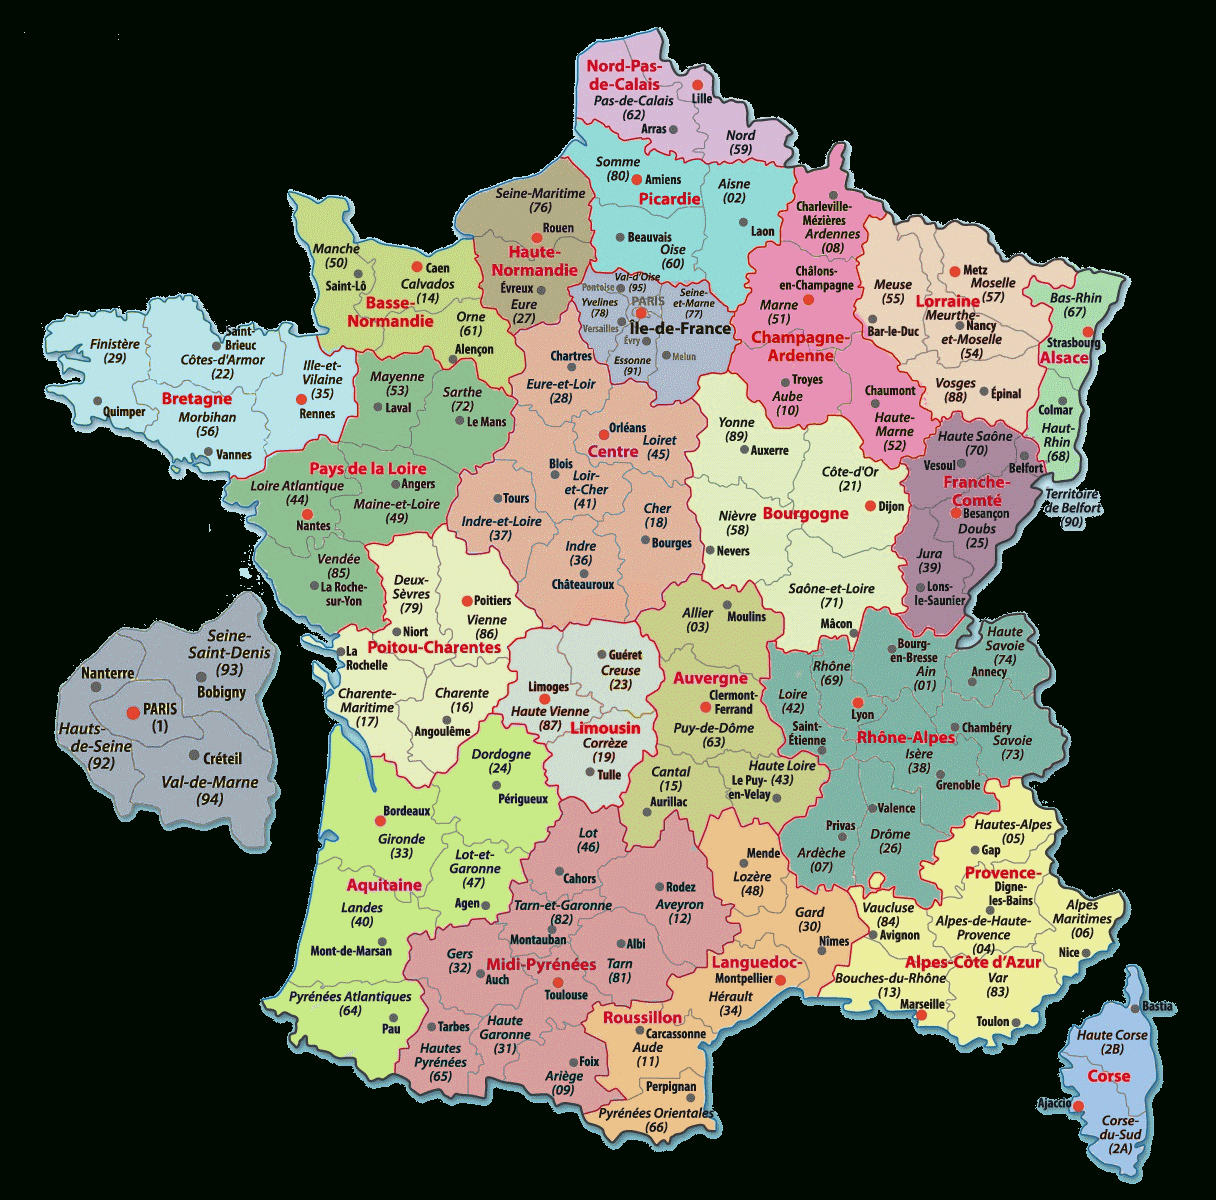 Carte De France Departements : Carte Des Départements De France destiné Carte De France Avec Villes Et Départements